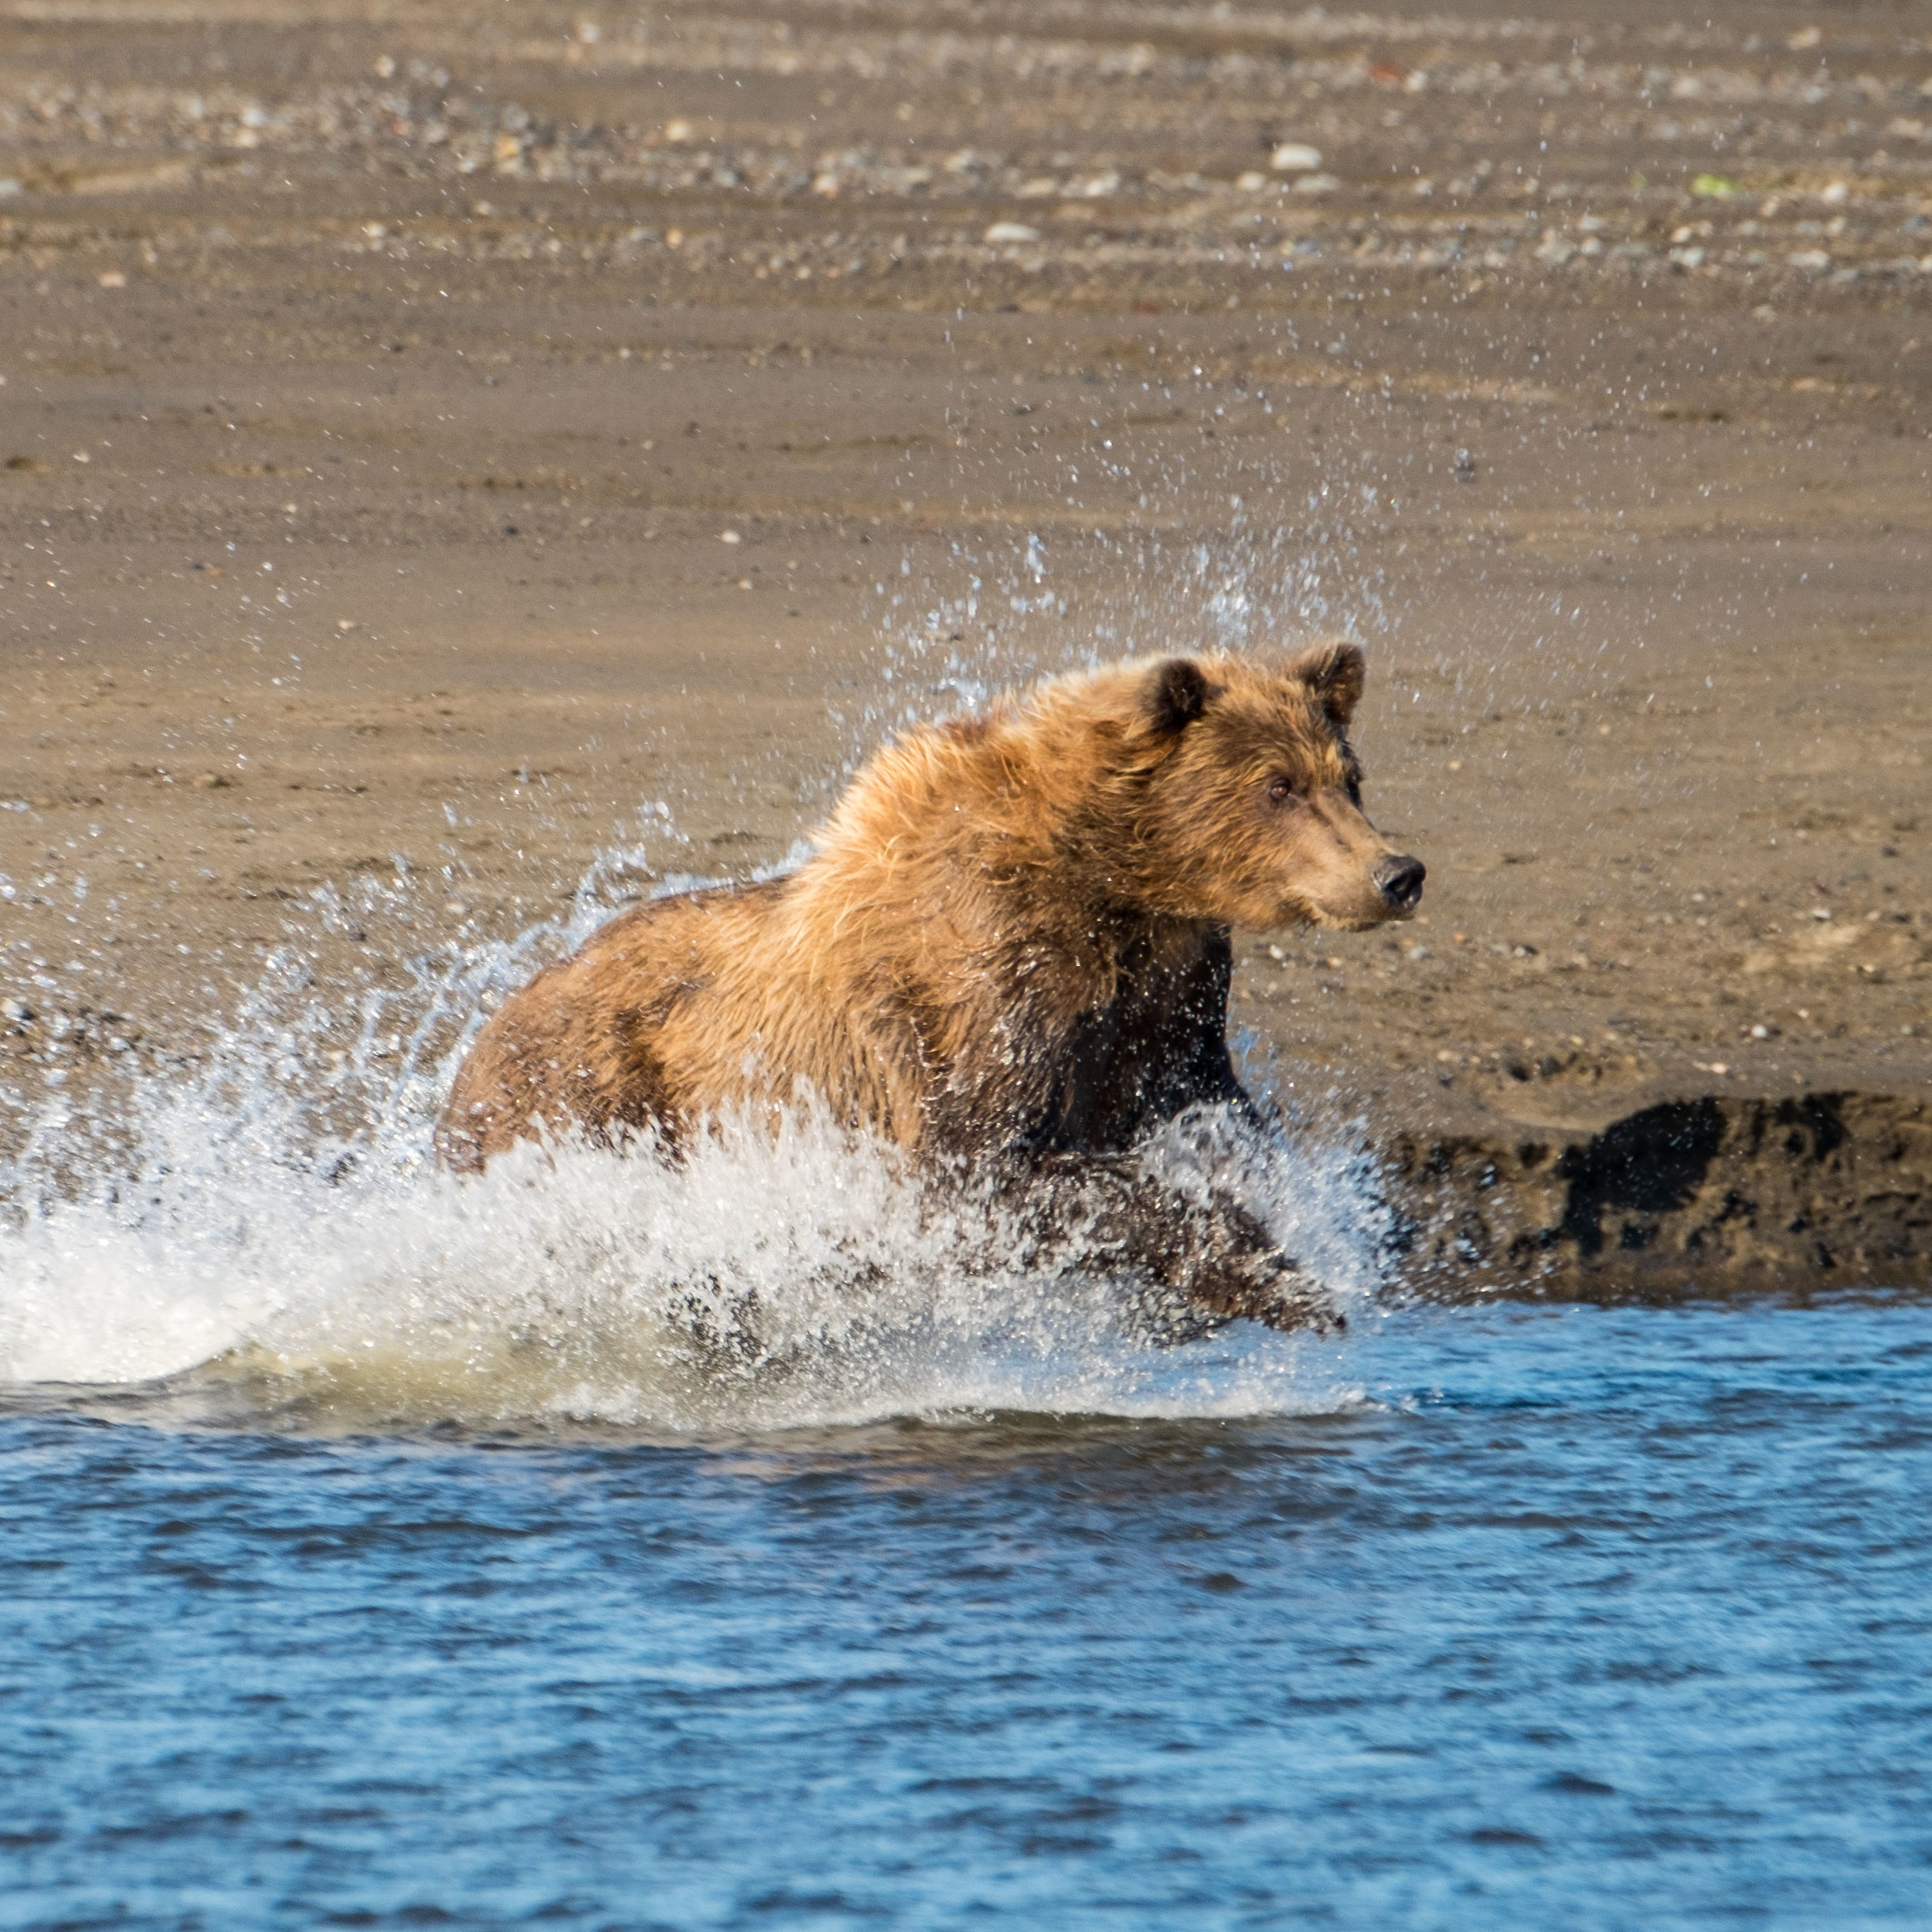 ...a sow spots a salmon and takes off into the water in a flurry of action. It kept us on our toes, as she and her cubs were not far away.